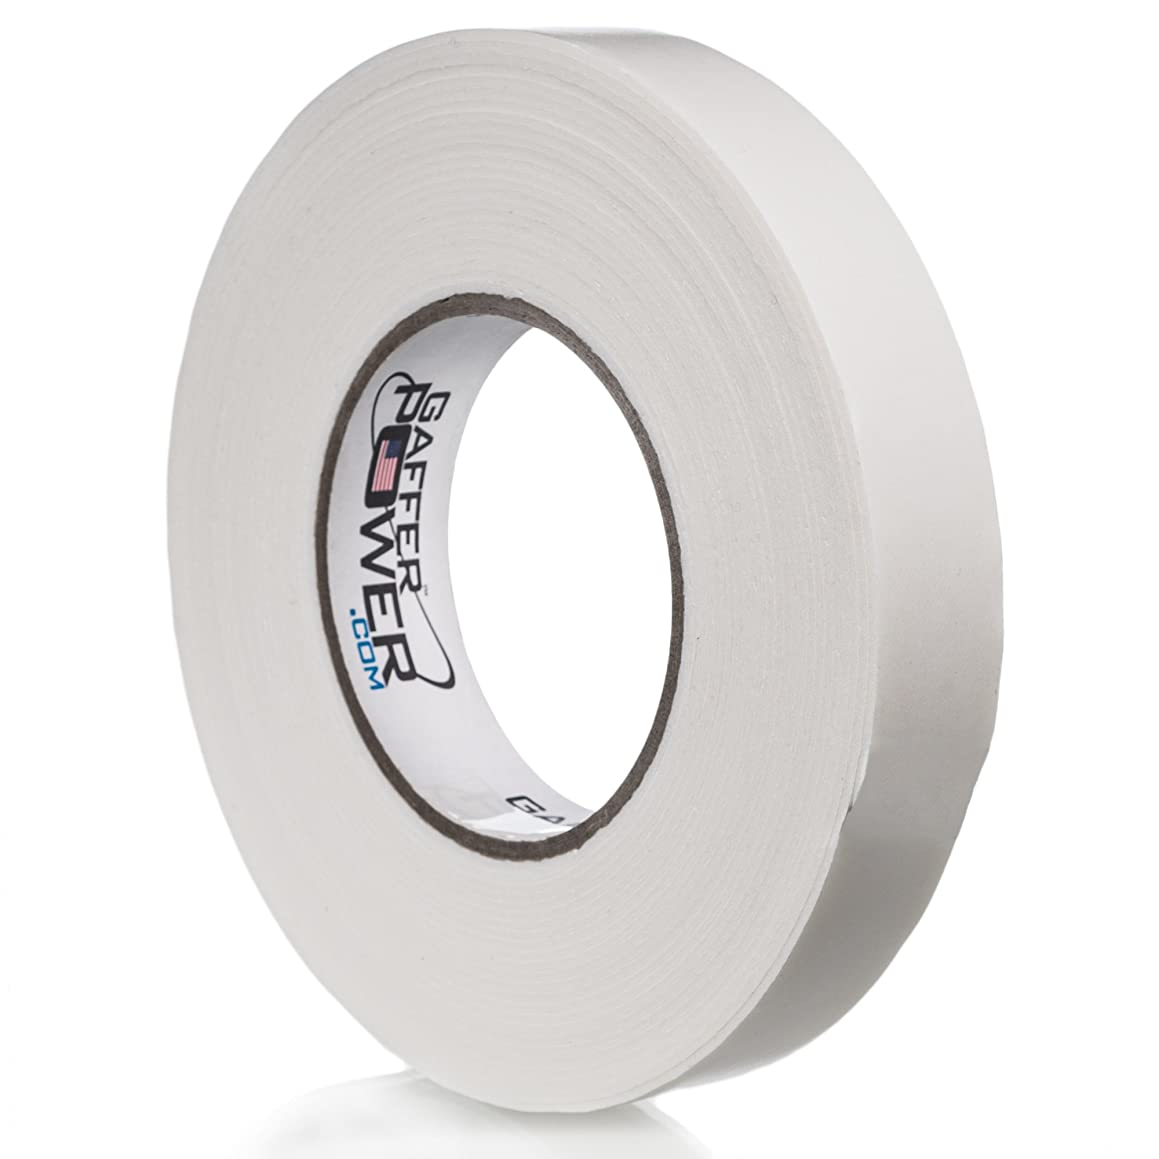 Premium Grade Double Sided Tape, Made in The USA, Secure Your Carpets, Rugs, Tape for Clothes, Fabric, Multi-Purpose (1 inch x 20 Yards)